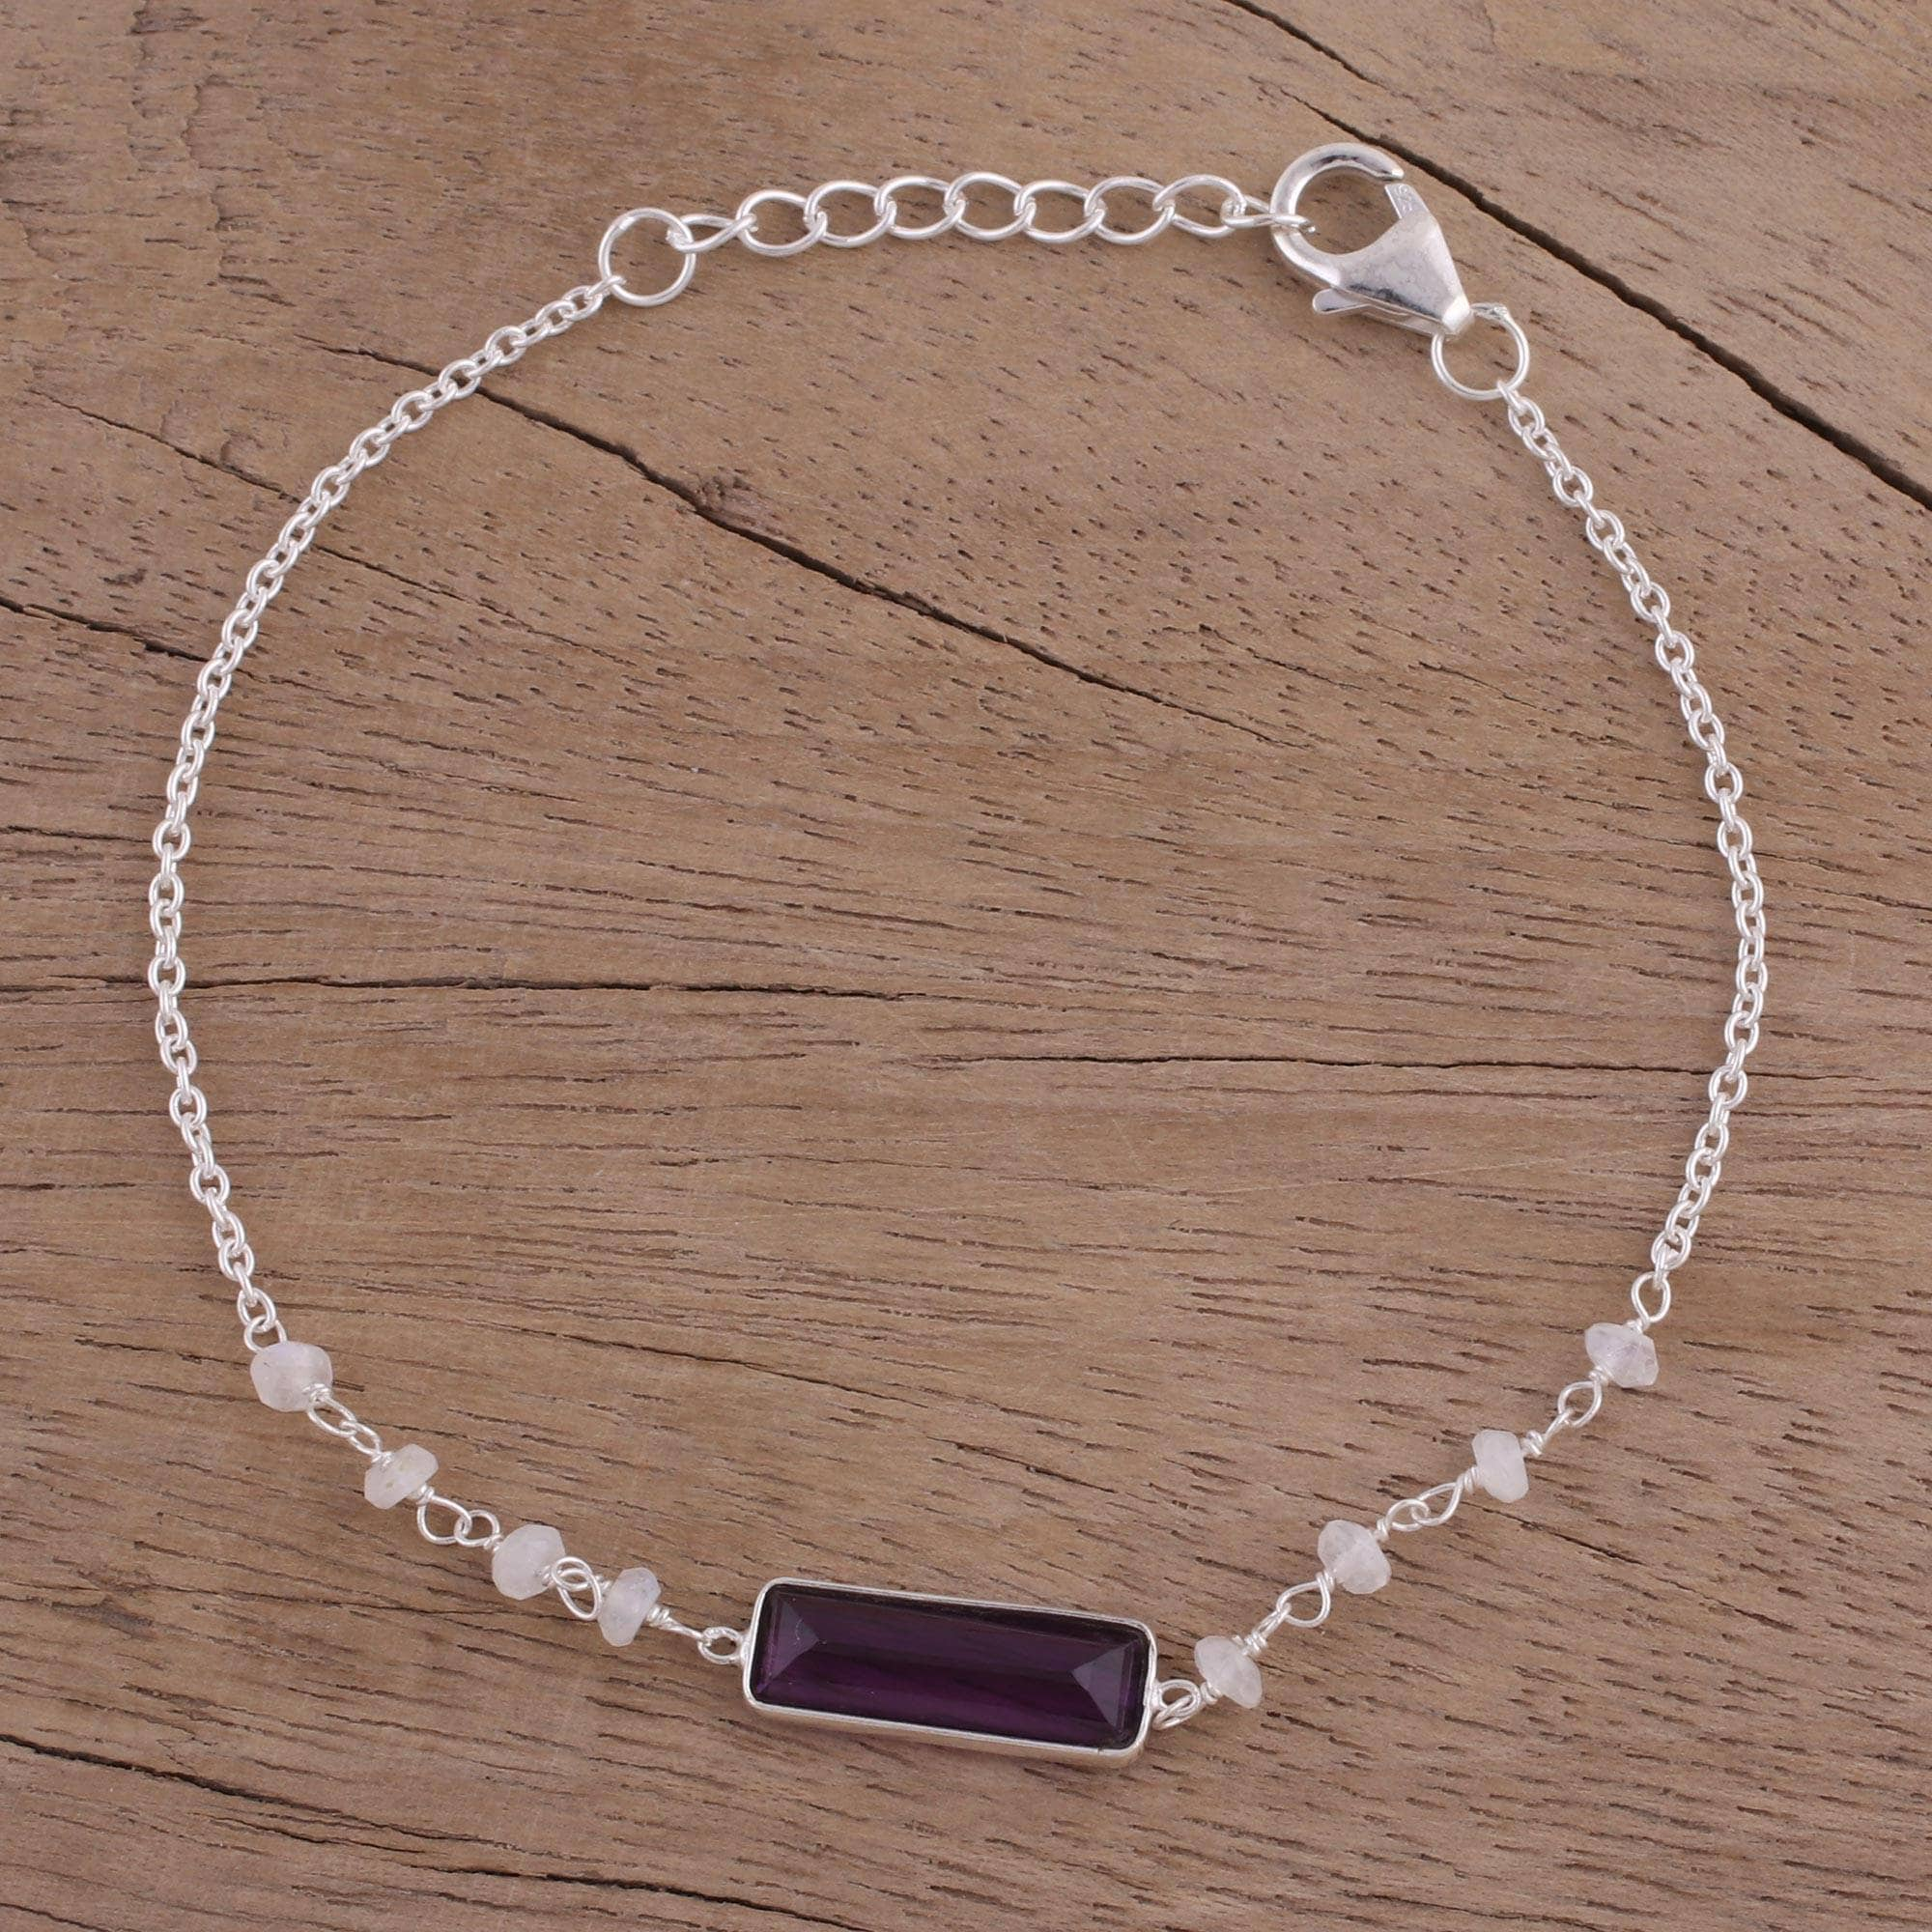 Handmade Sterling Silver Magical Prism Amethyst Rainbow Moonstone Bracelet India